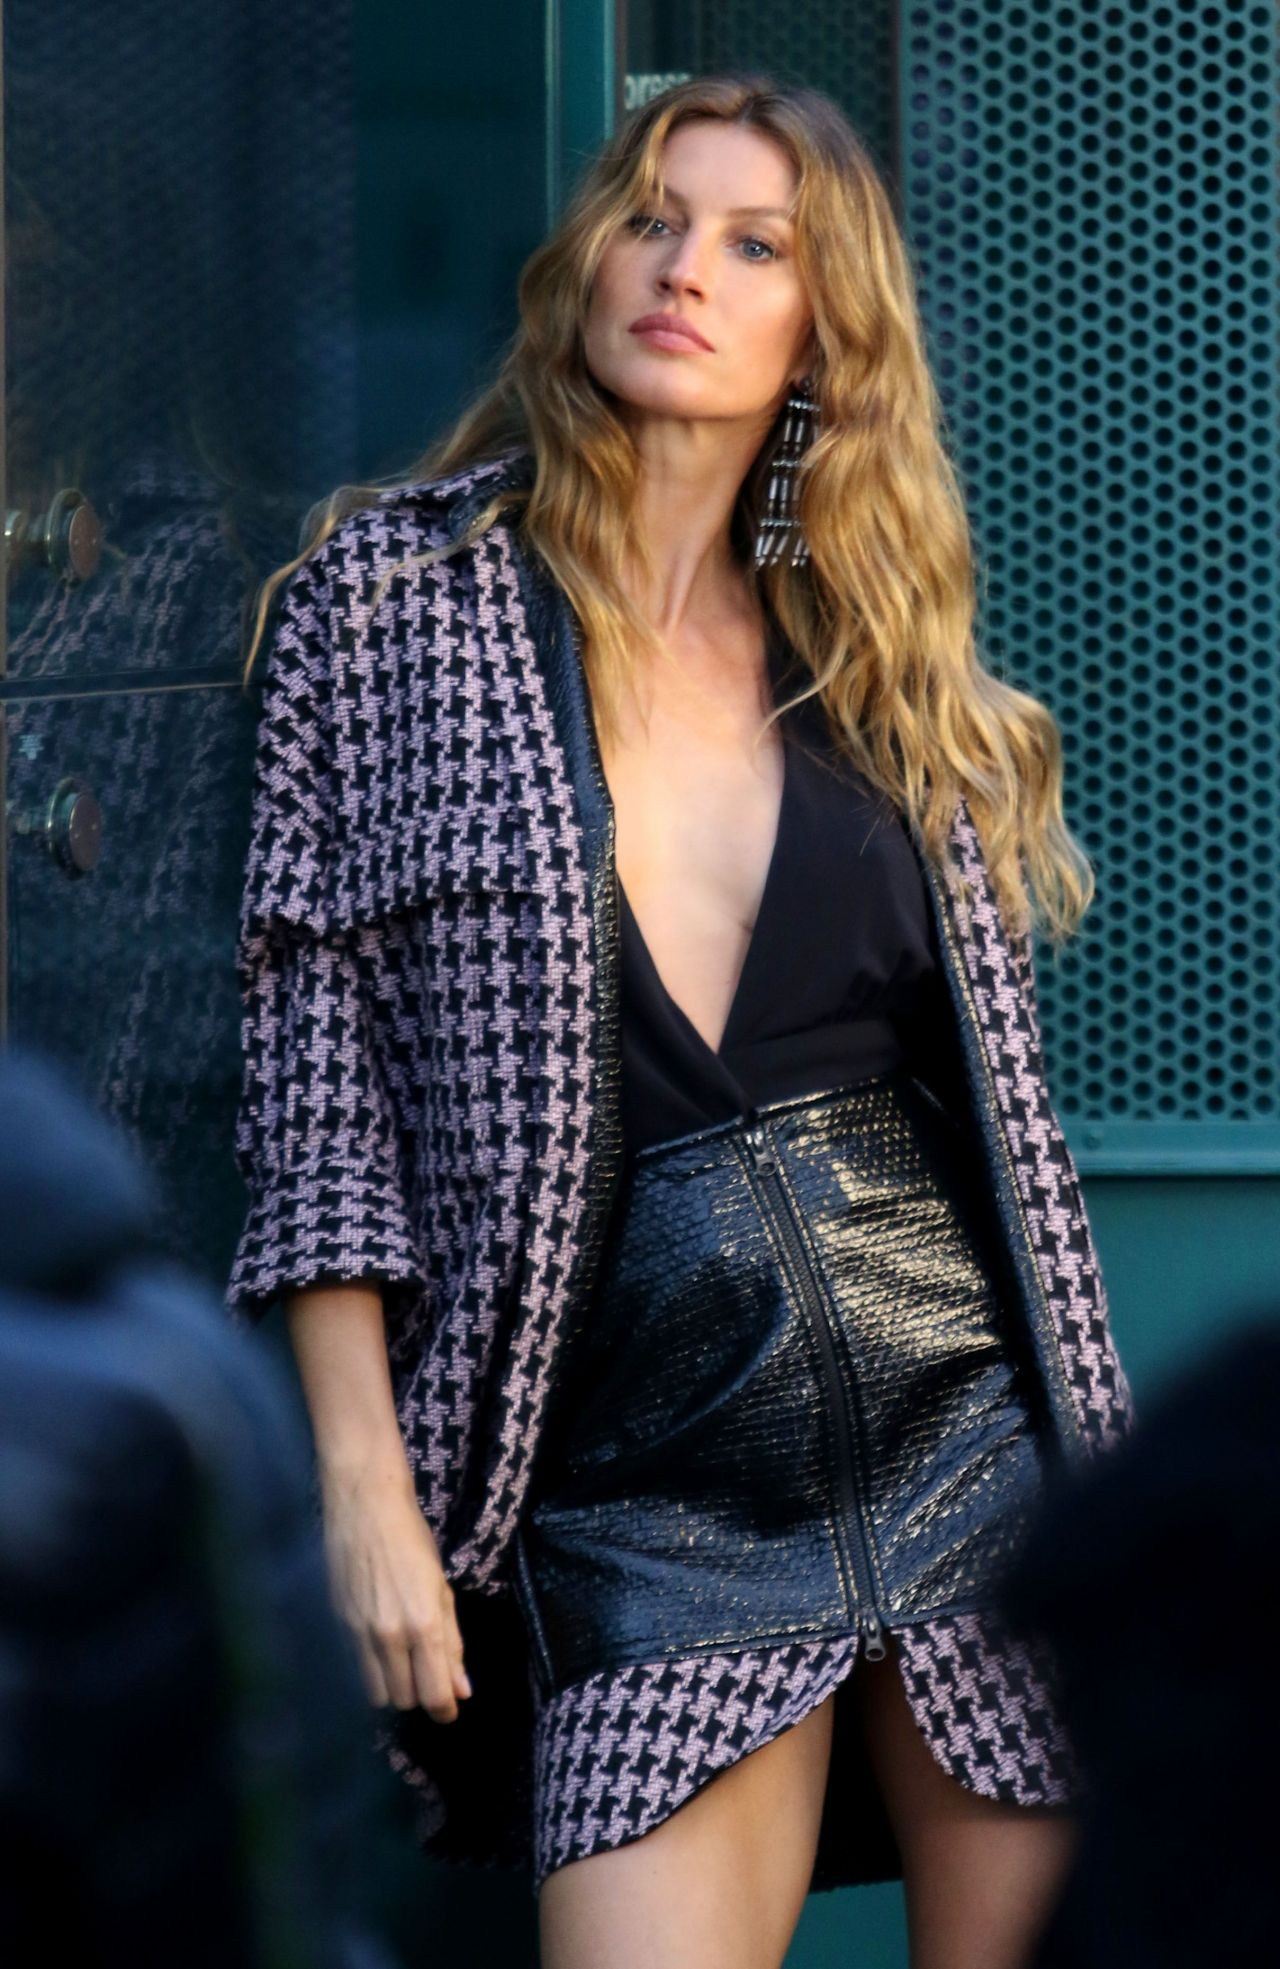 Gisele Bundchen Photoshoot - Brooklyn, NY 12/04/2017 Gisele Bundchen